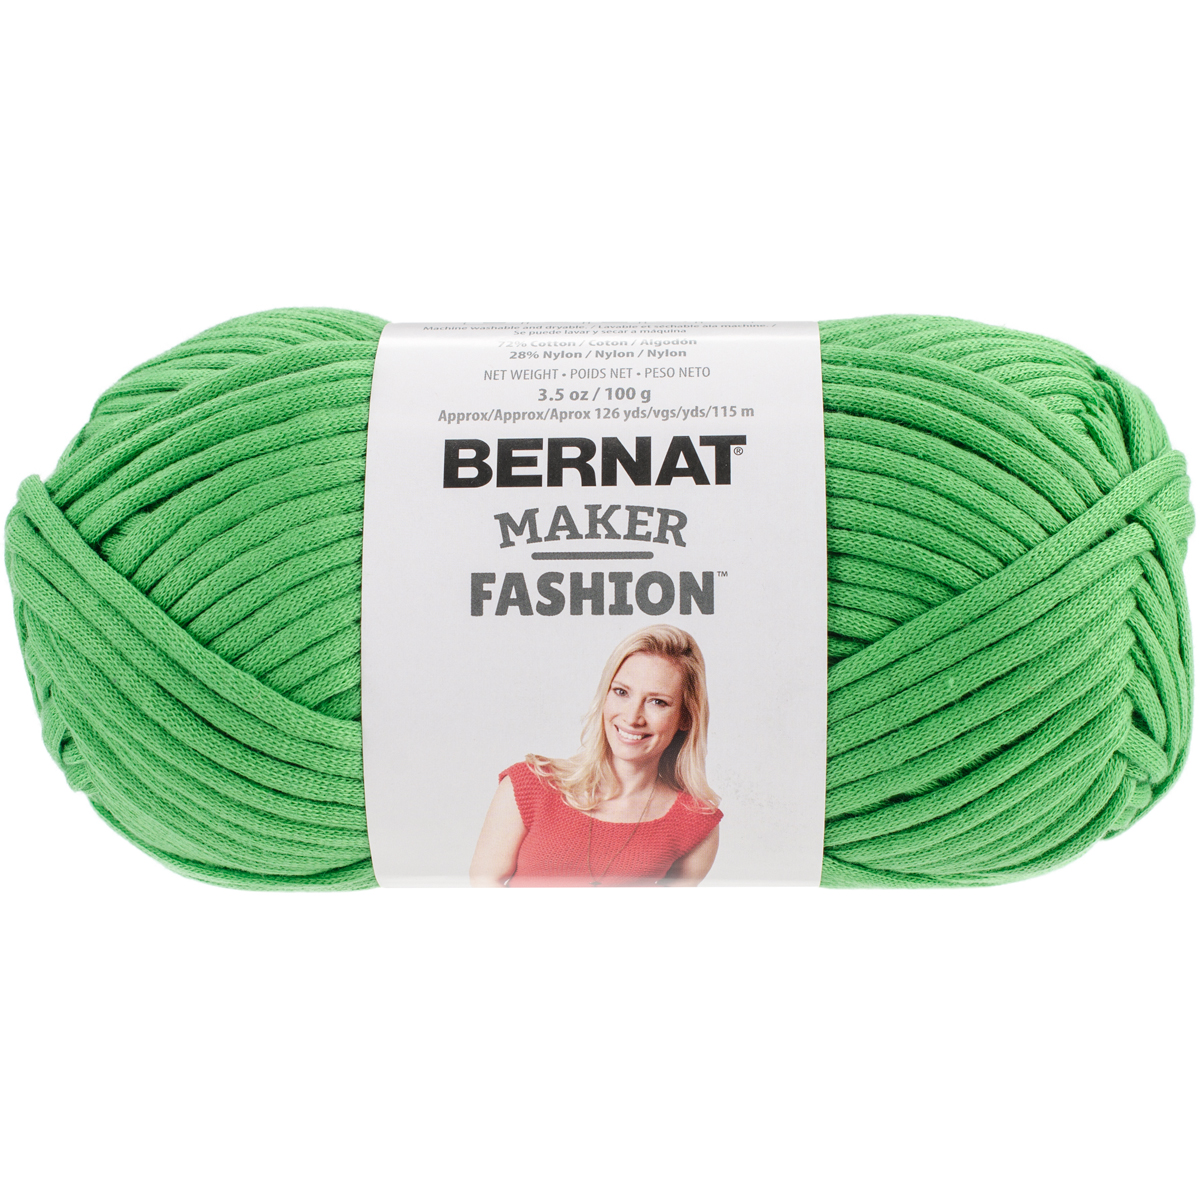 Bernat Maker Fashion Yarn-Green